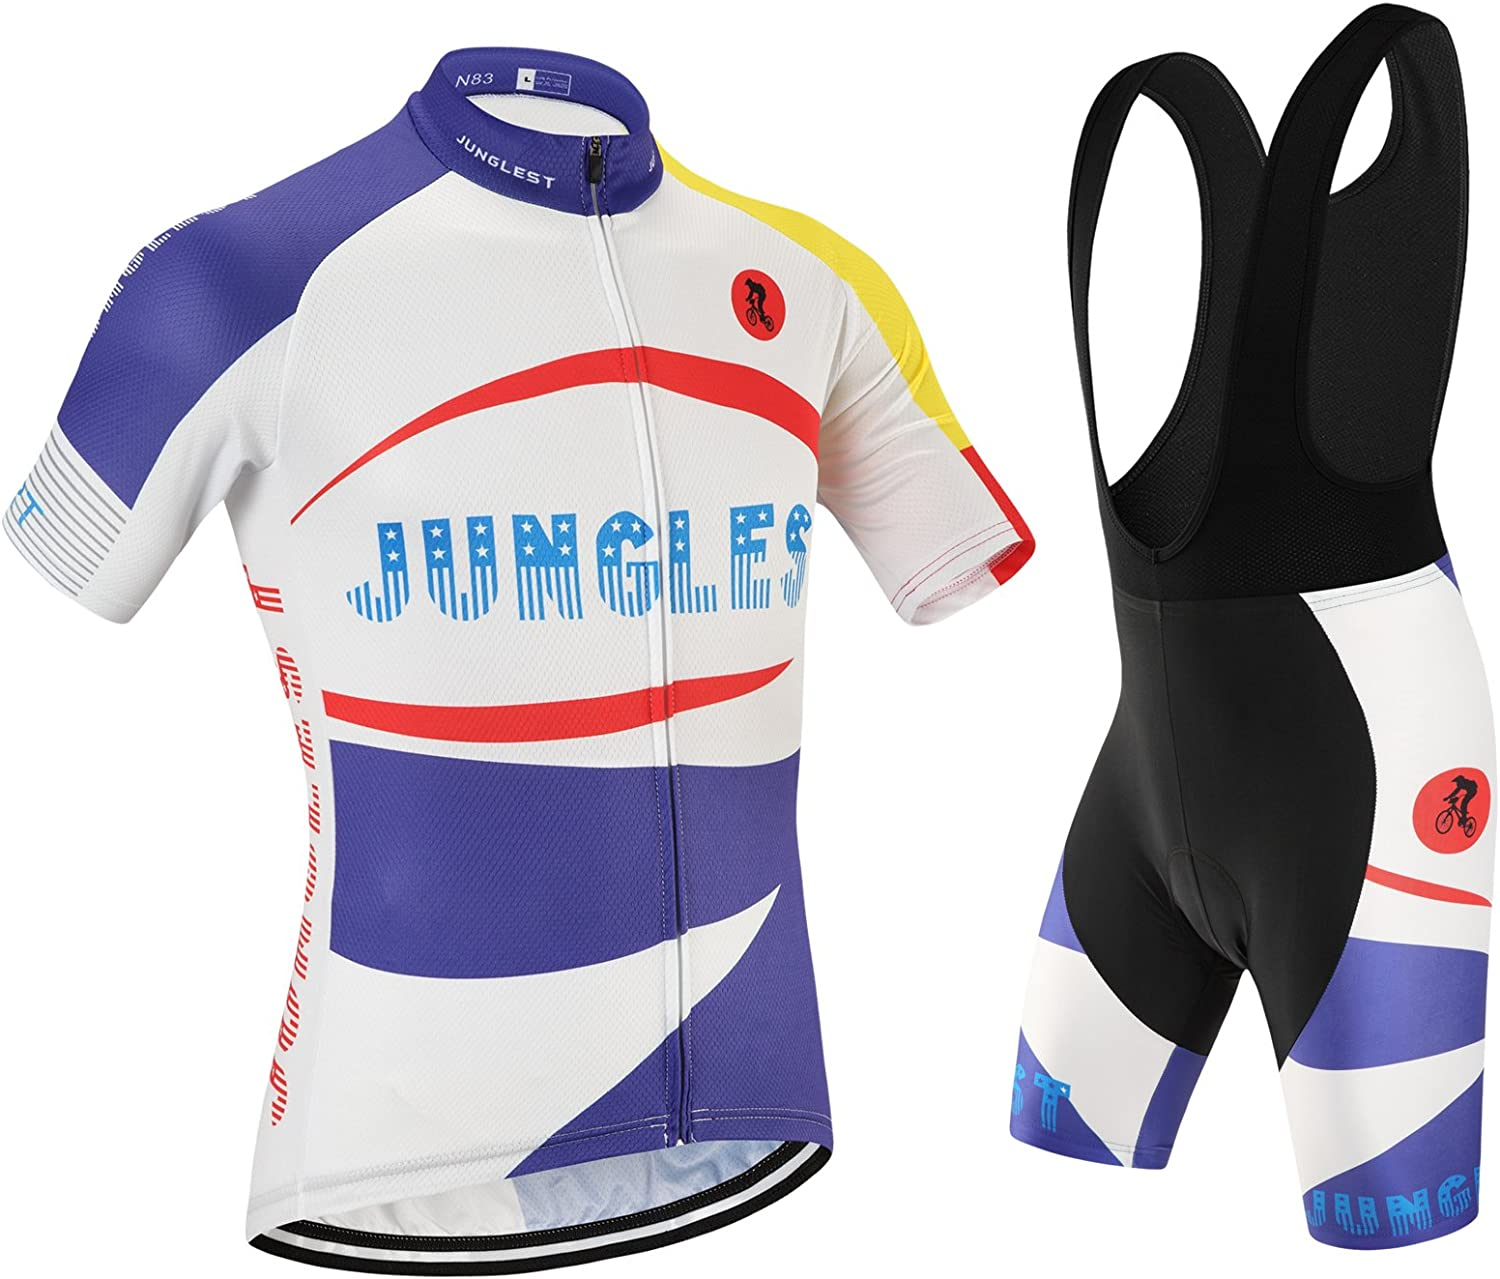 Cycling jersey Set, Maillot de Cyclisme Wen Homme Short sleeve Manches Courtes(S5XL,option bib Cuissard,3D pad Coussin) N83